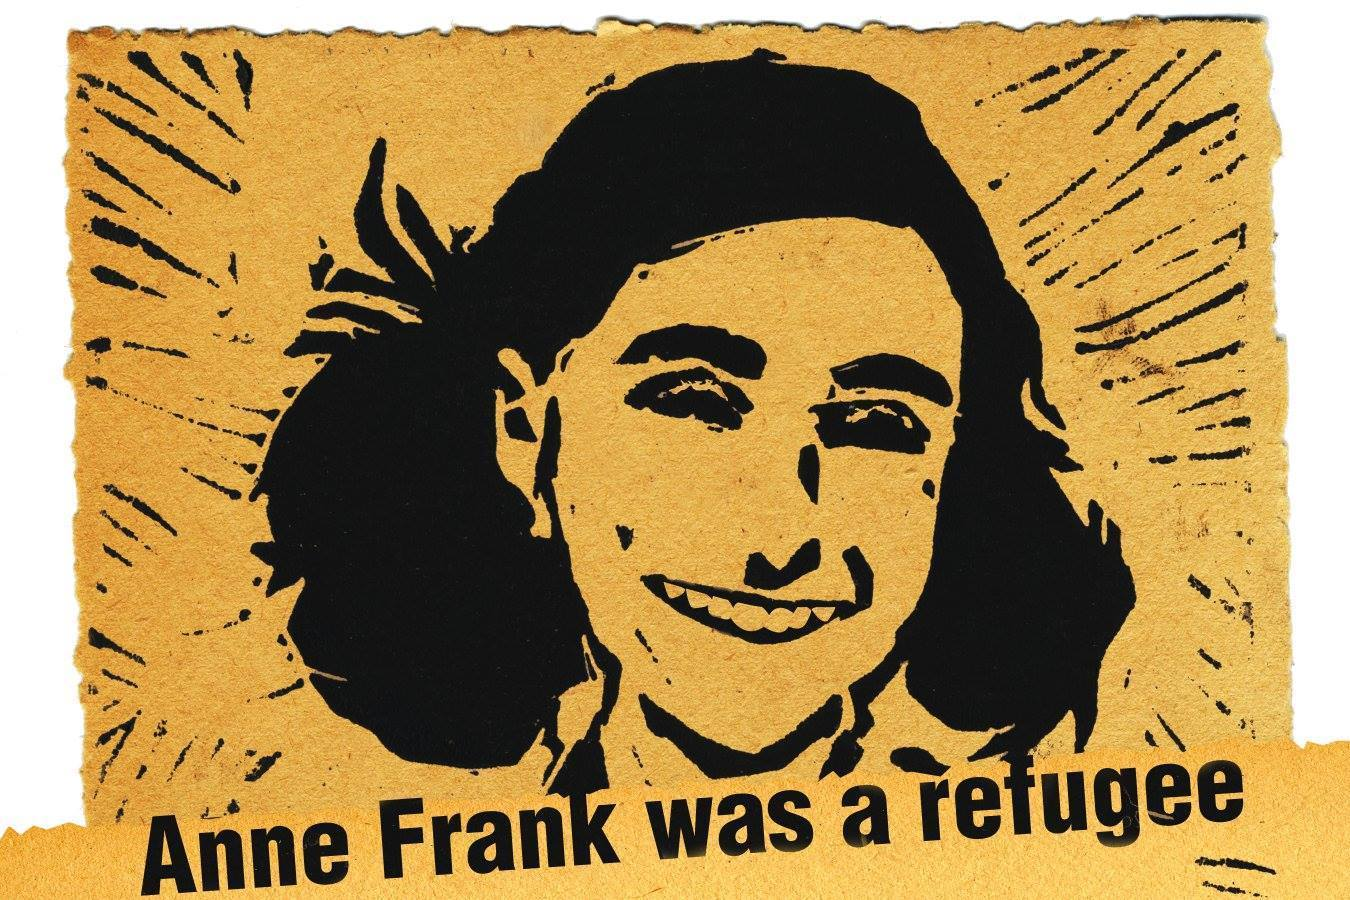 Anne Frank was a refugee